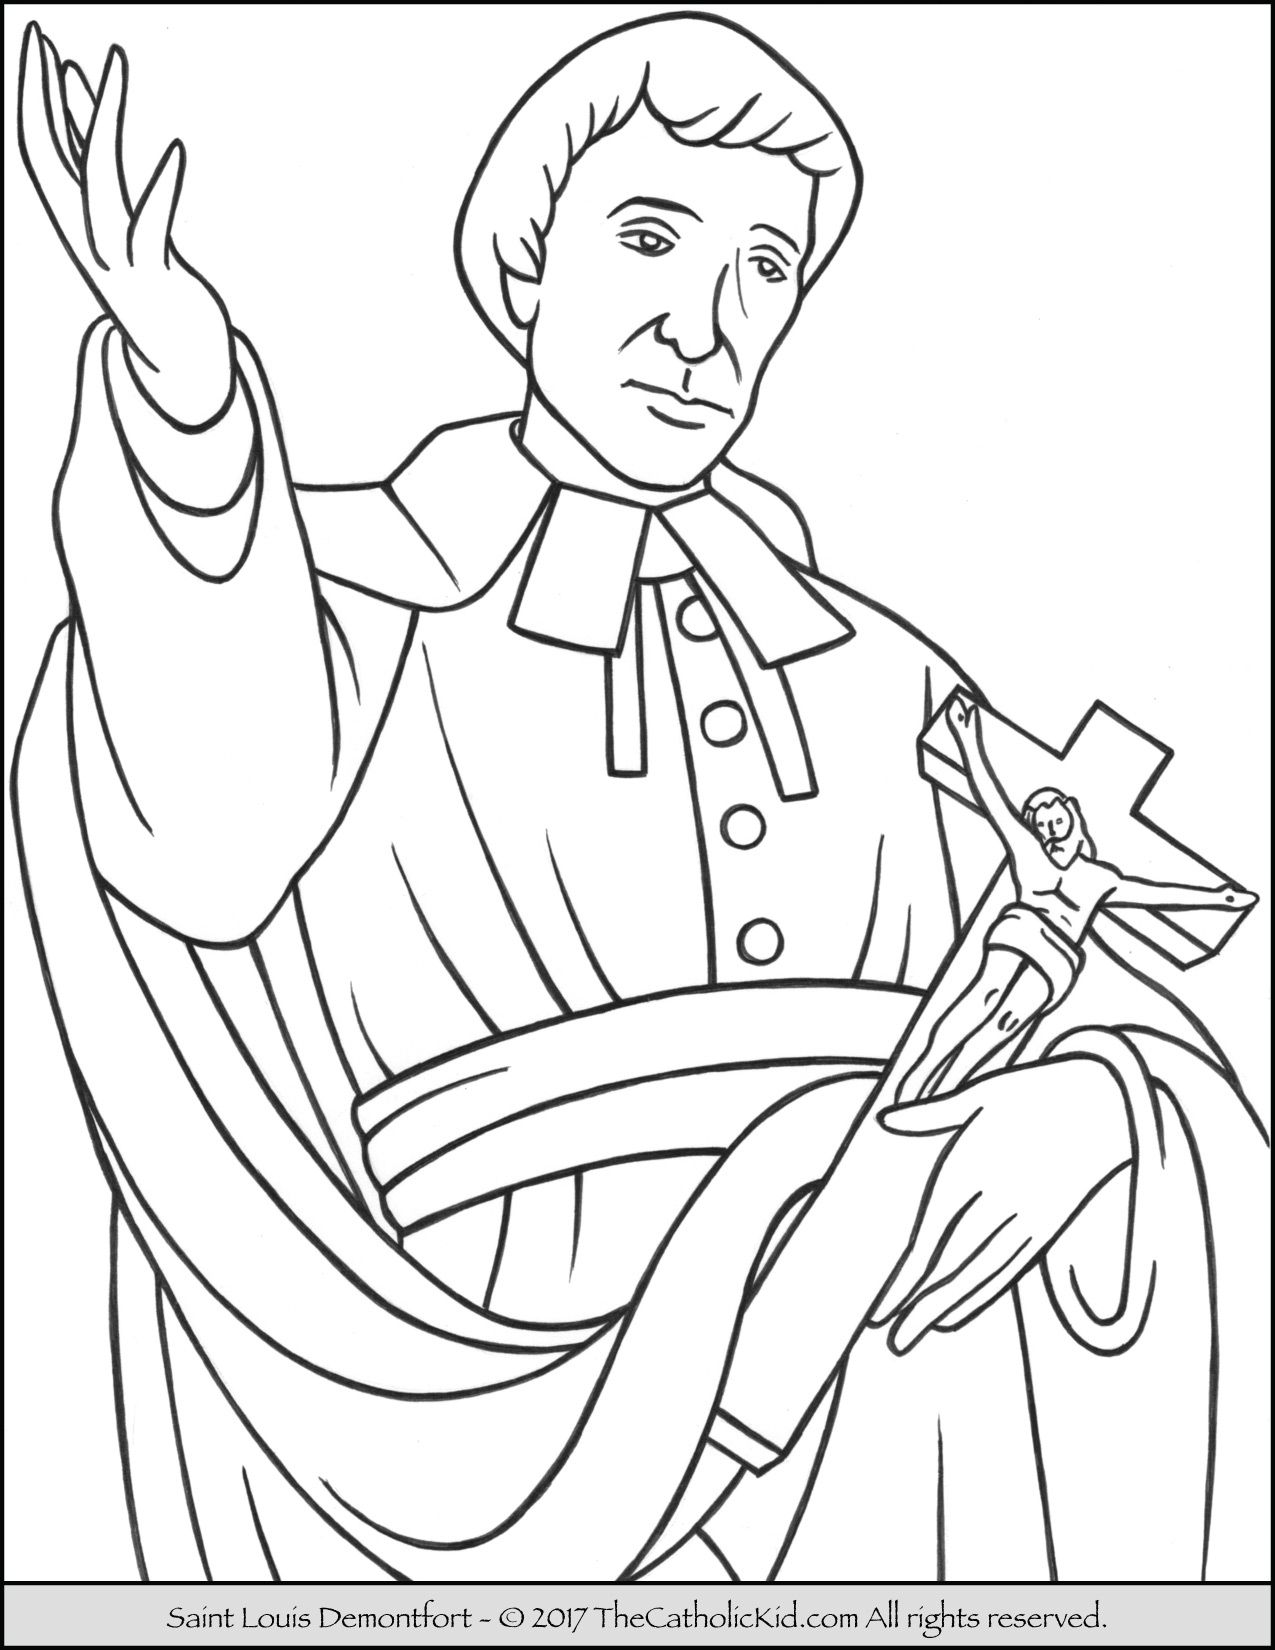 Saint Luis De Montfort Coloring Page. Feastday: April 28 Birth: 1673 ...